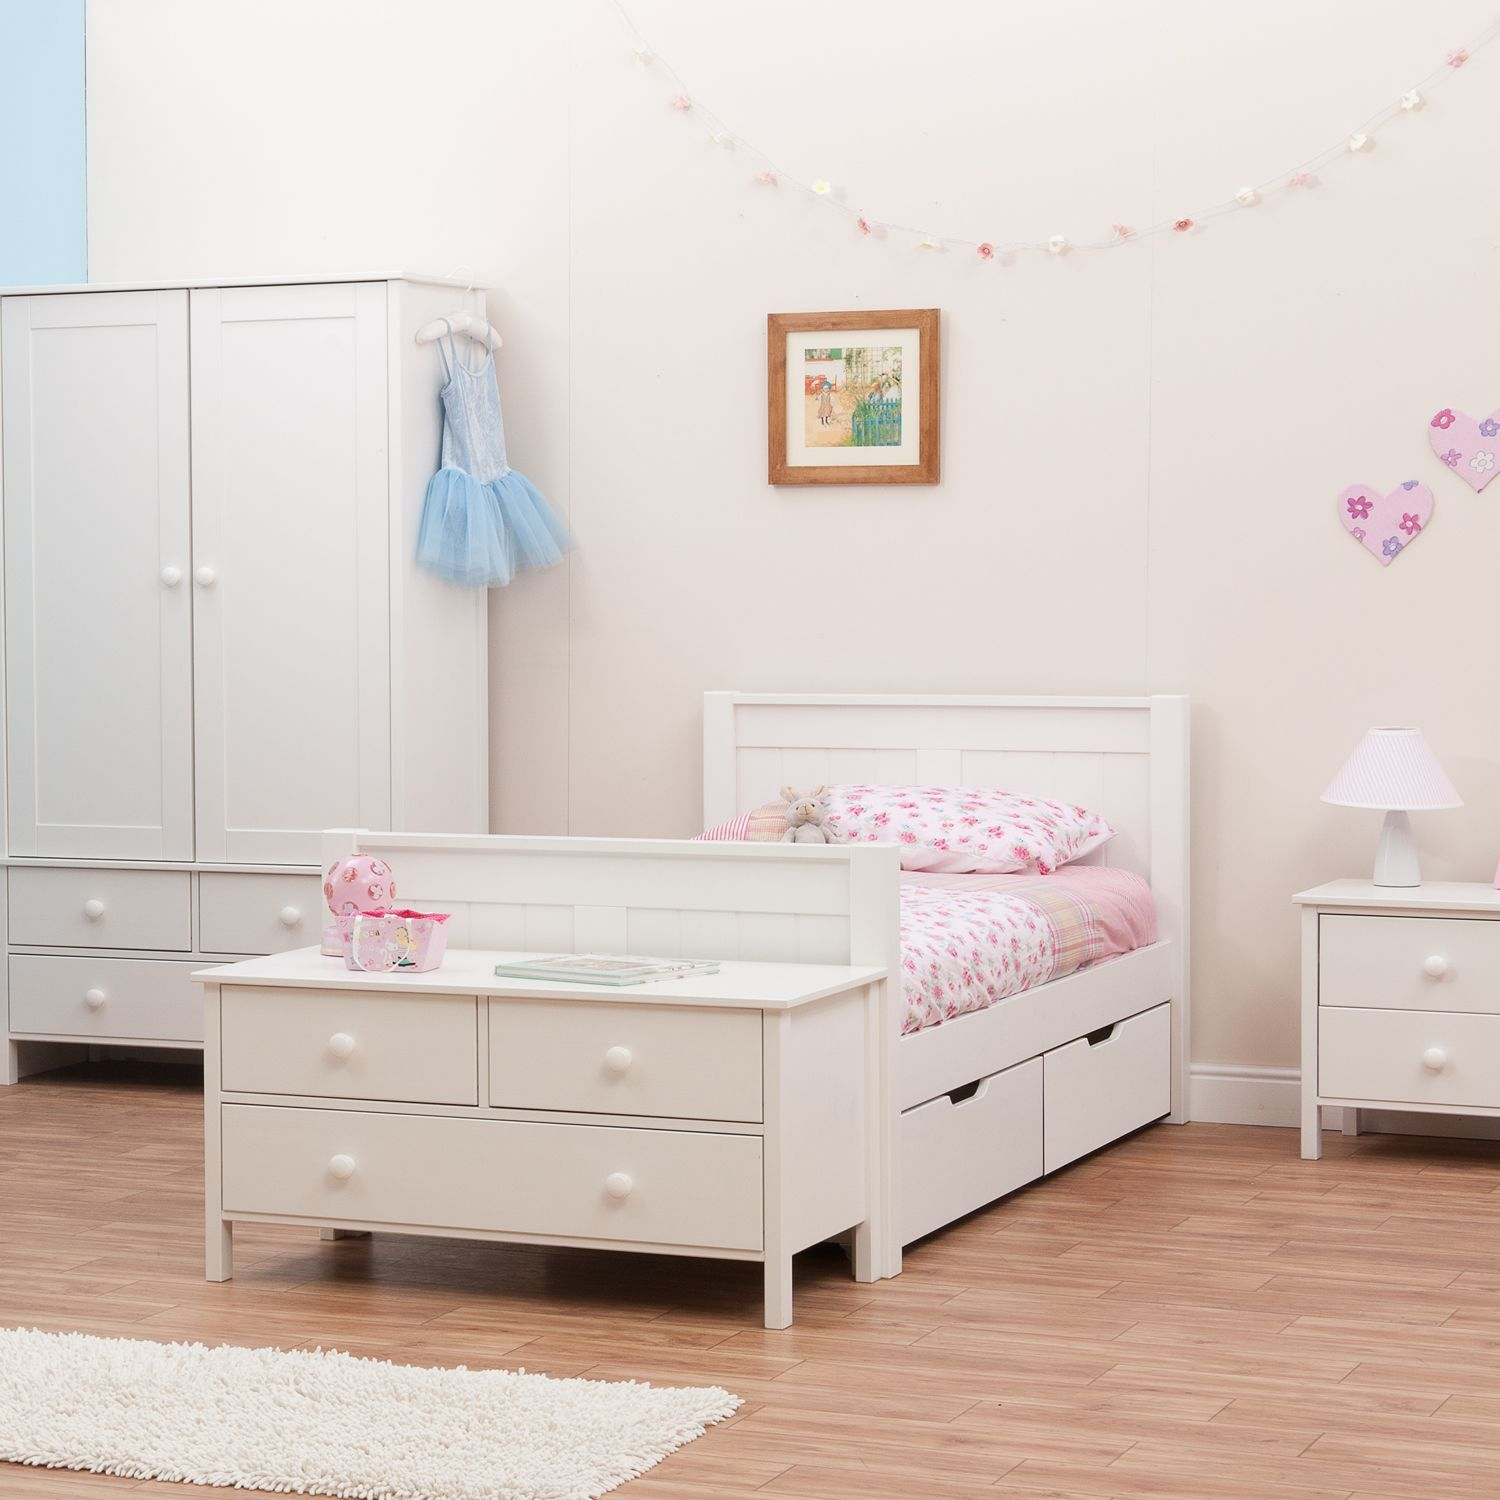 Classic Single Bed With Trundle Bed By Stompa: Stompa Classic Kids 3ft Single Wooden Bed